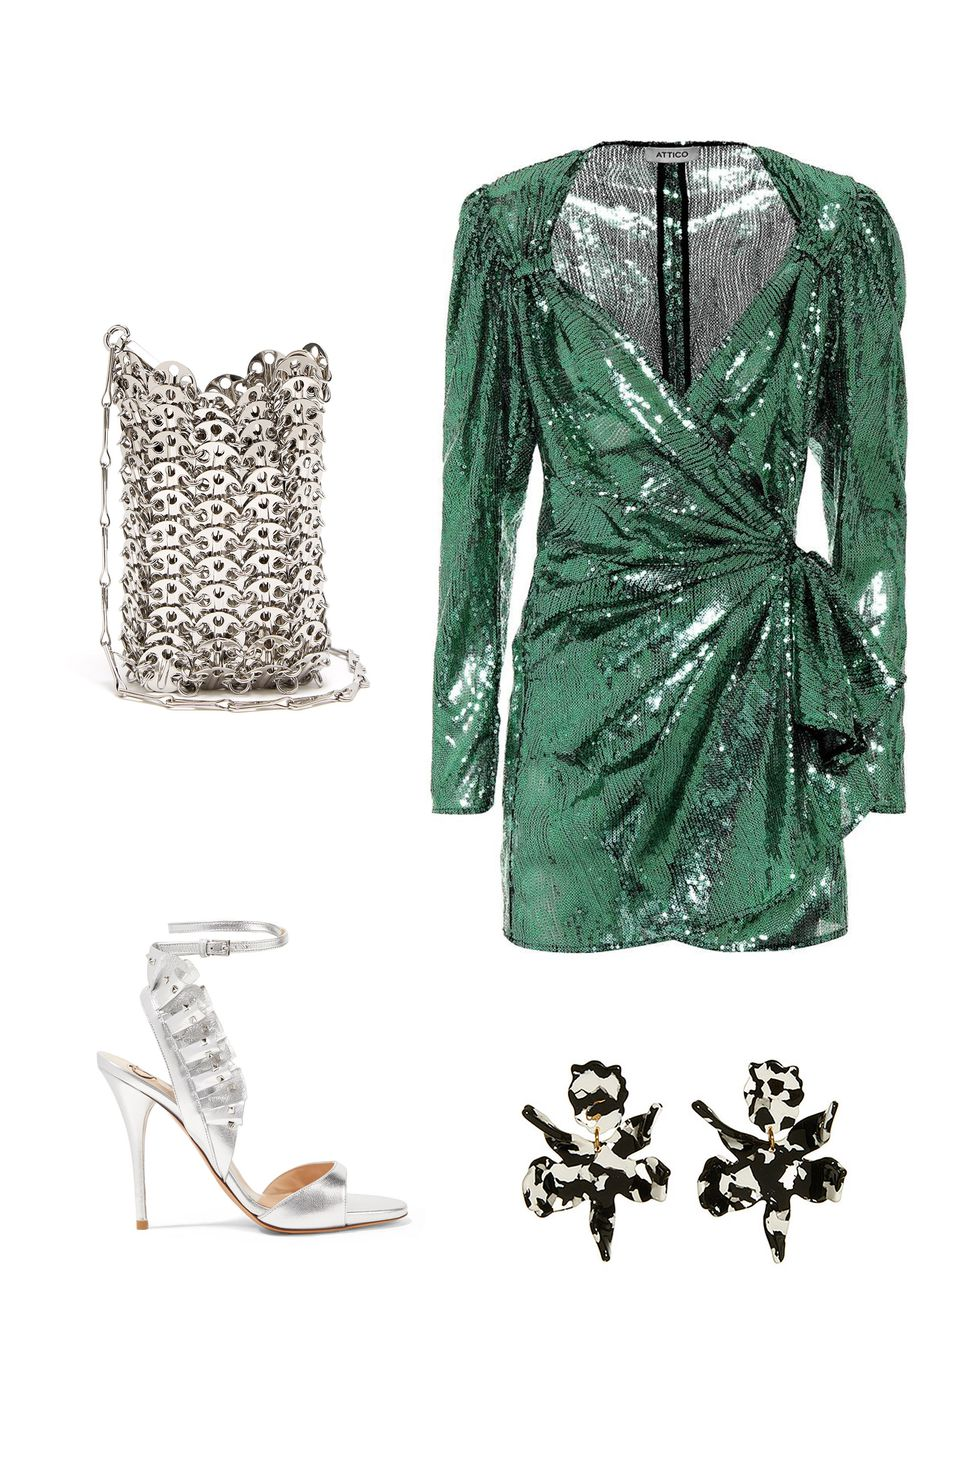 what-to-wear-for-a-fall-wedding-guest-outfit-autumn-disco-diva-green-emerald-dress-mini-sparkle-gray-bag-silver-gray-shoe-sandalh-studs-wrap-dinner.jpg